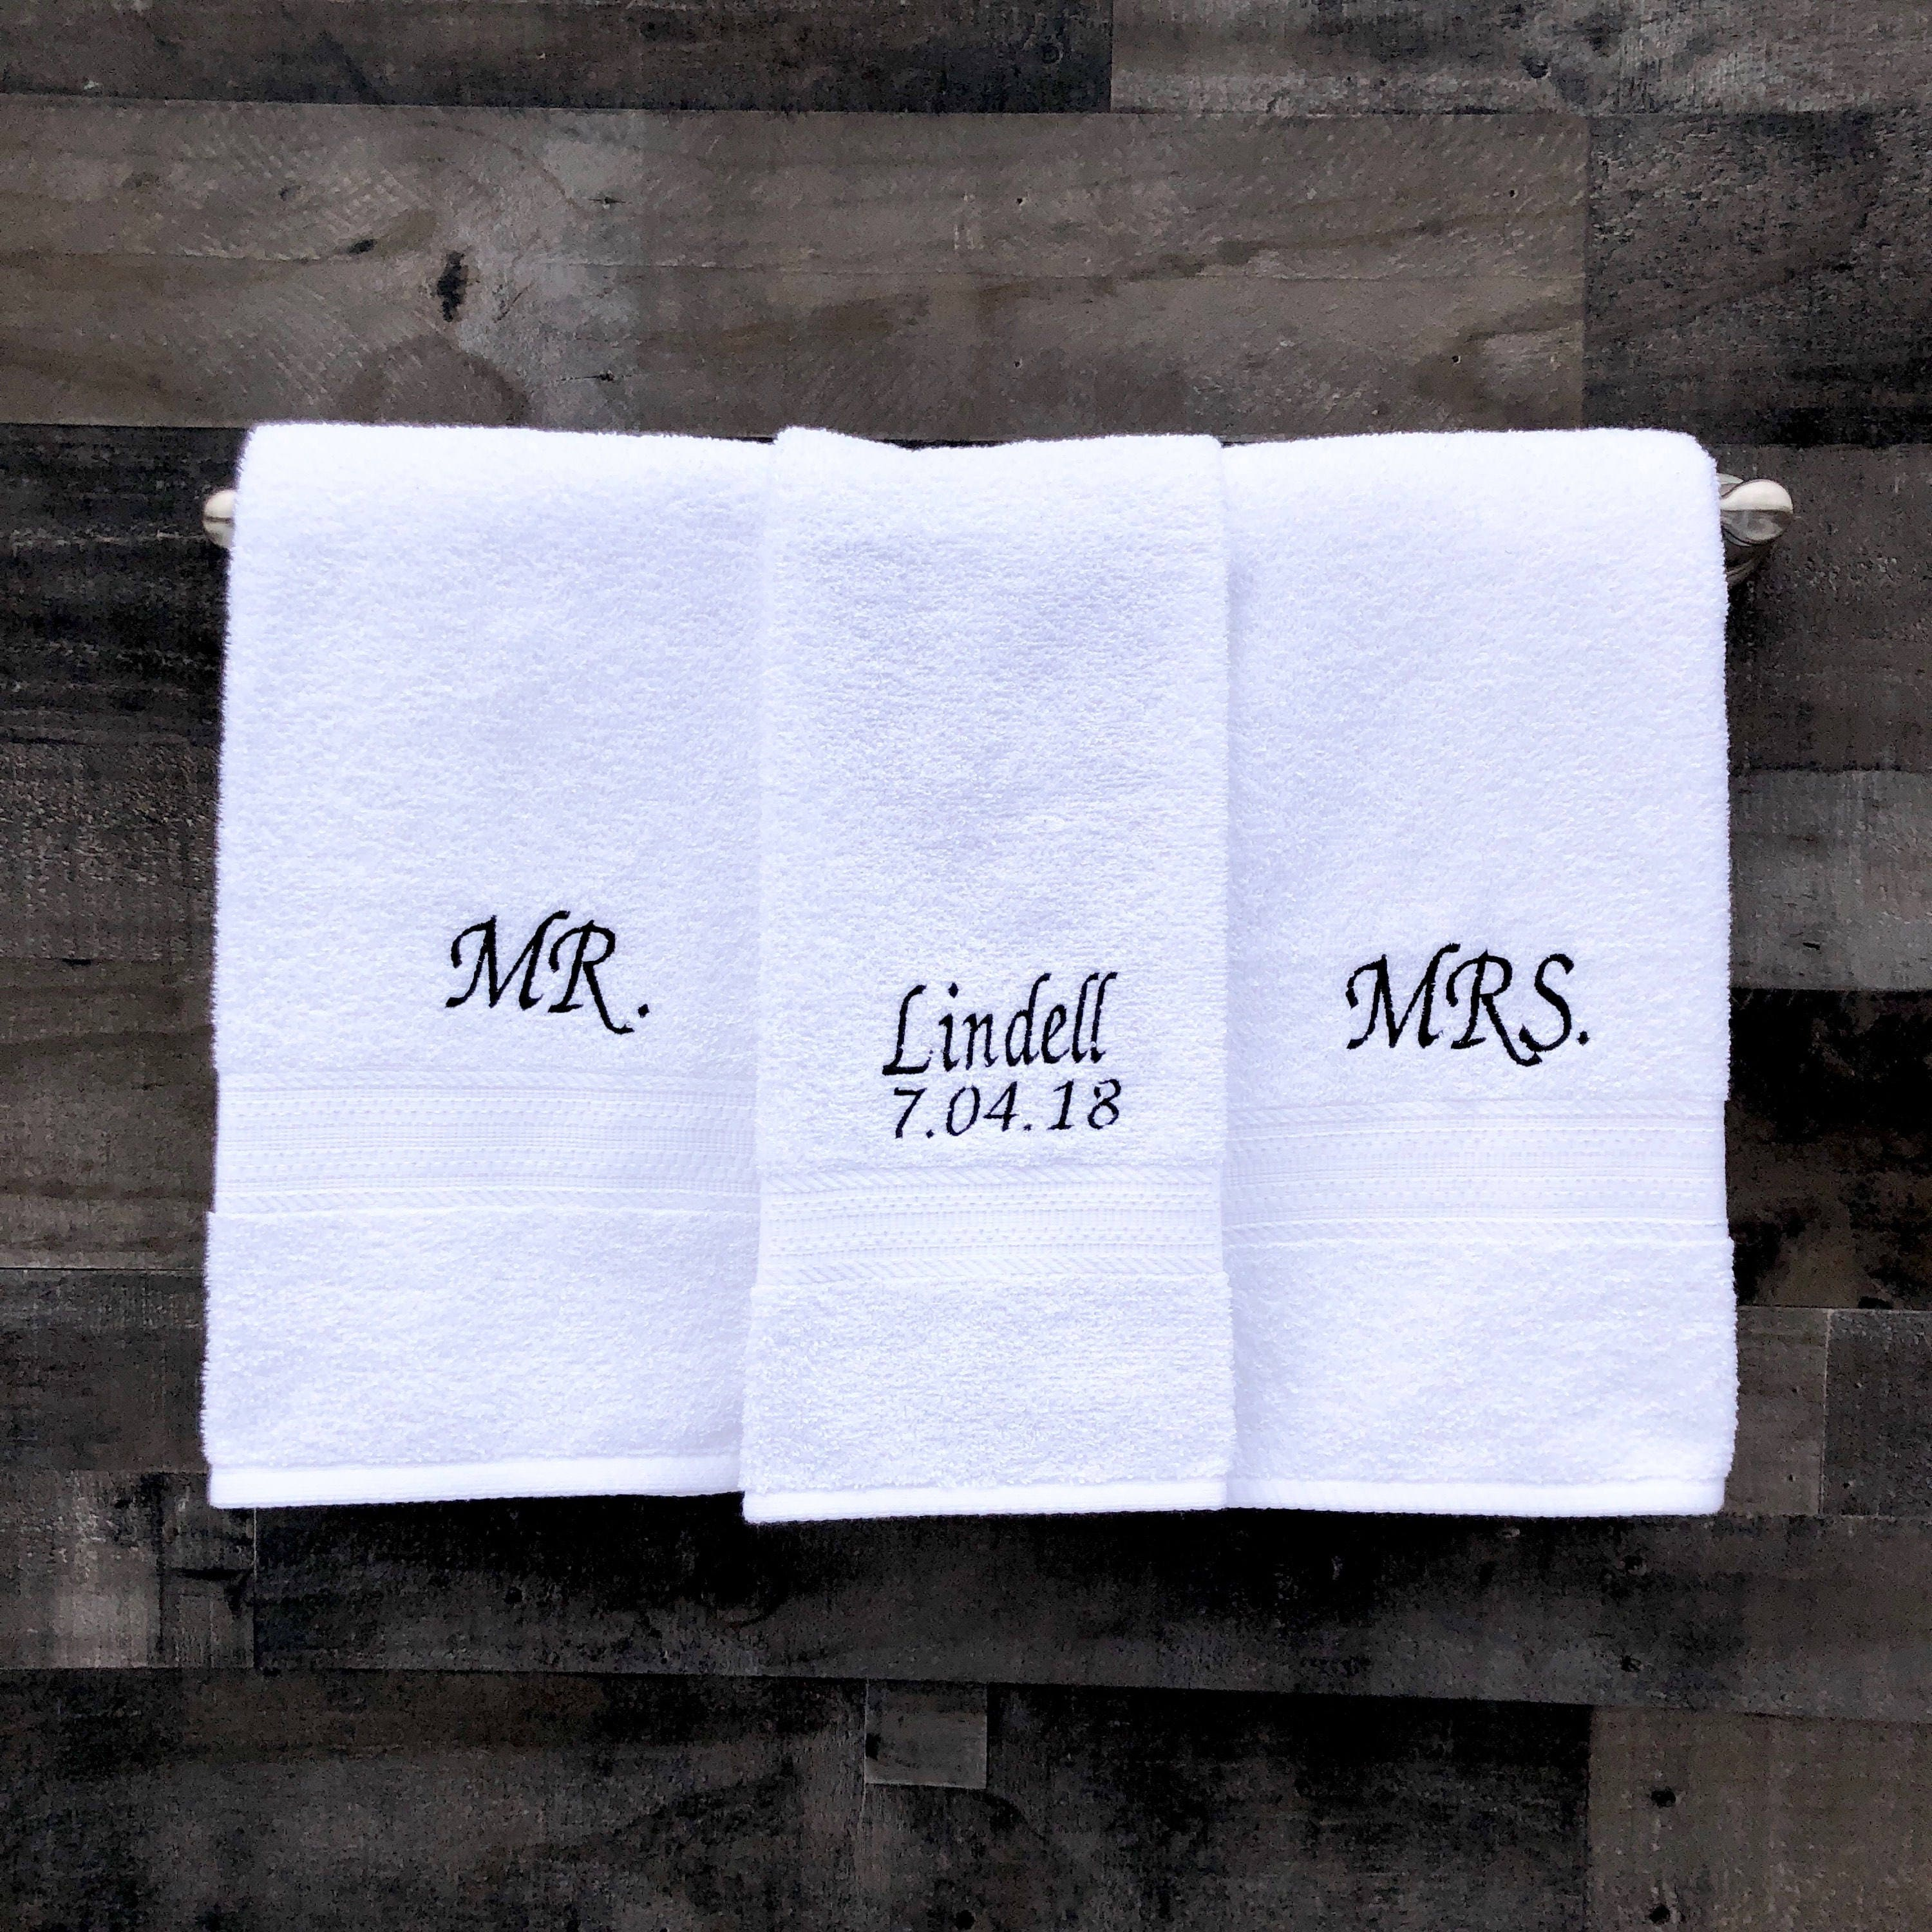 Mr And Mrs Embroidered Towels With Last Name And Wedding